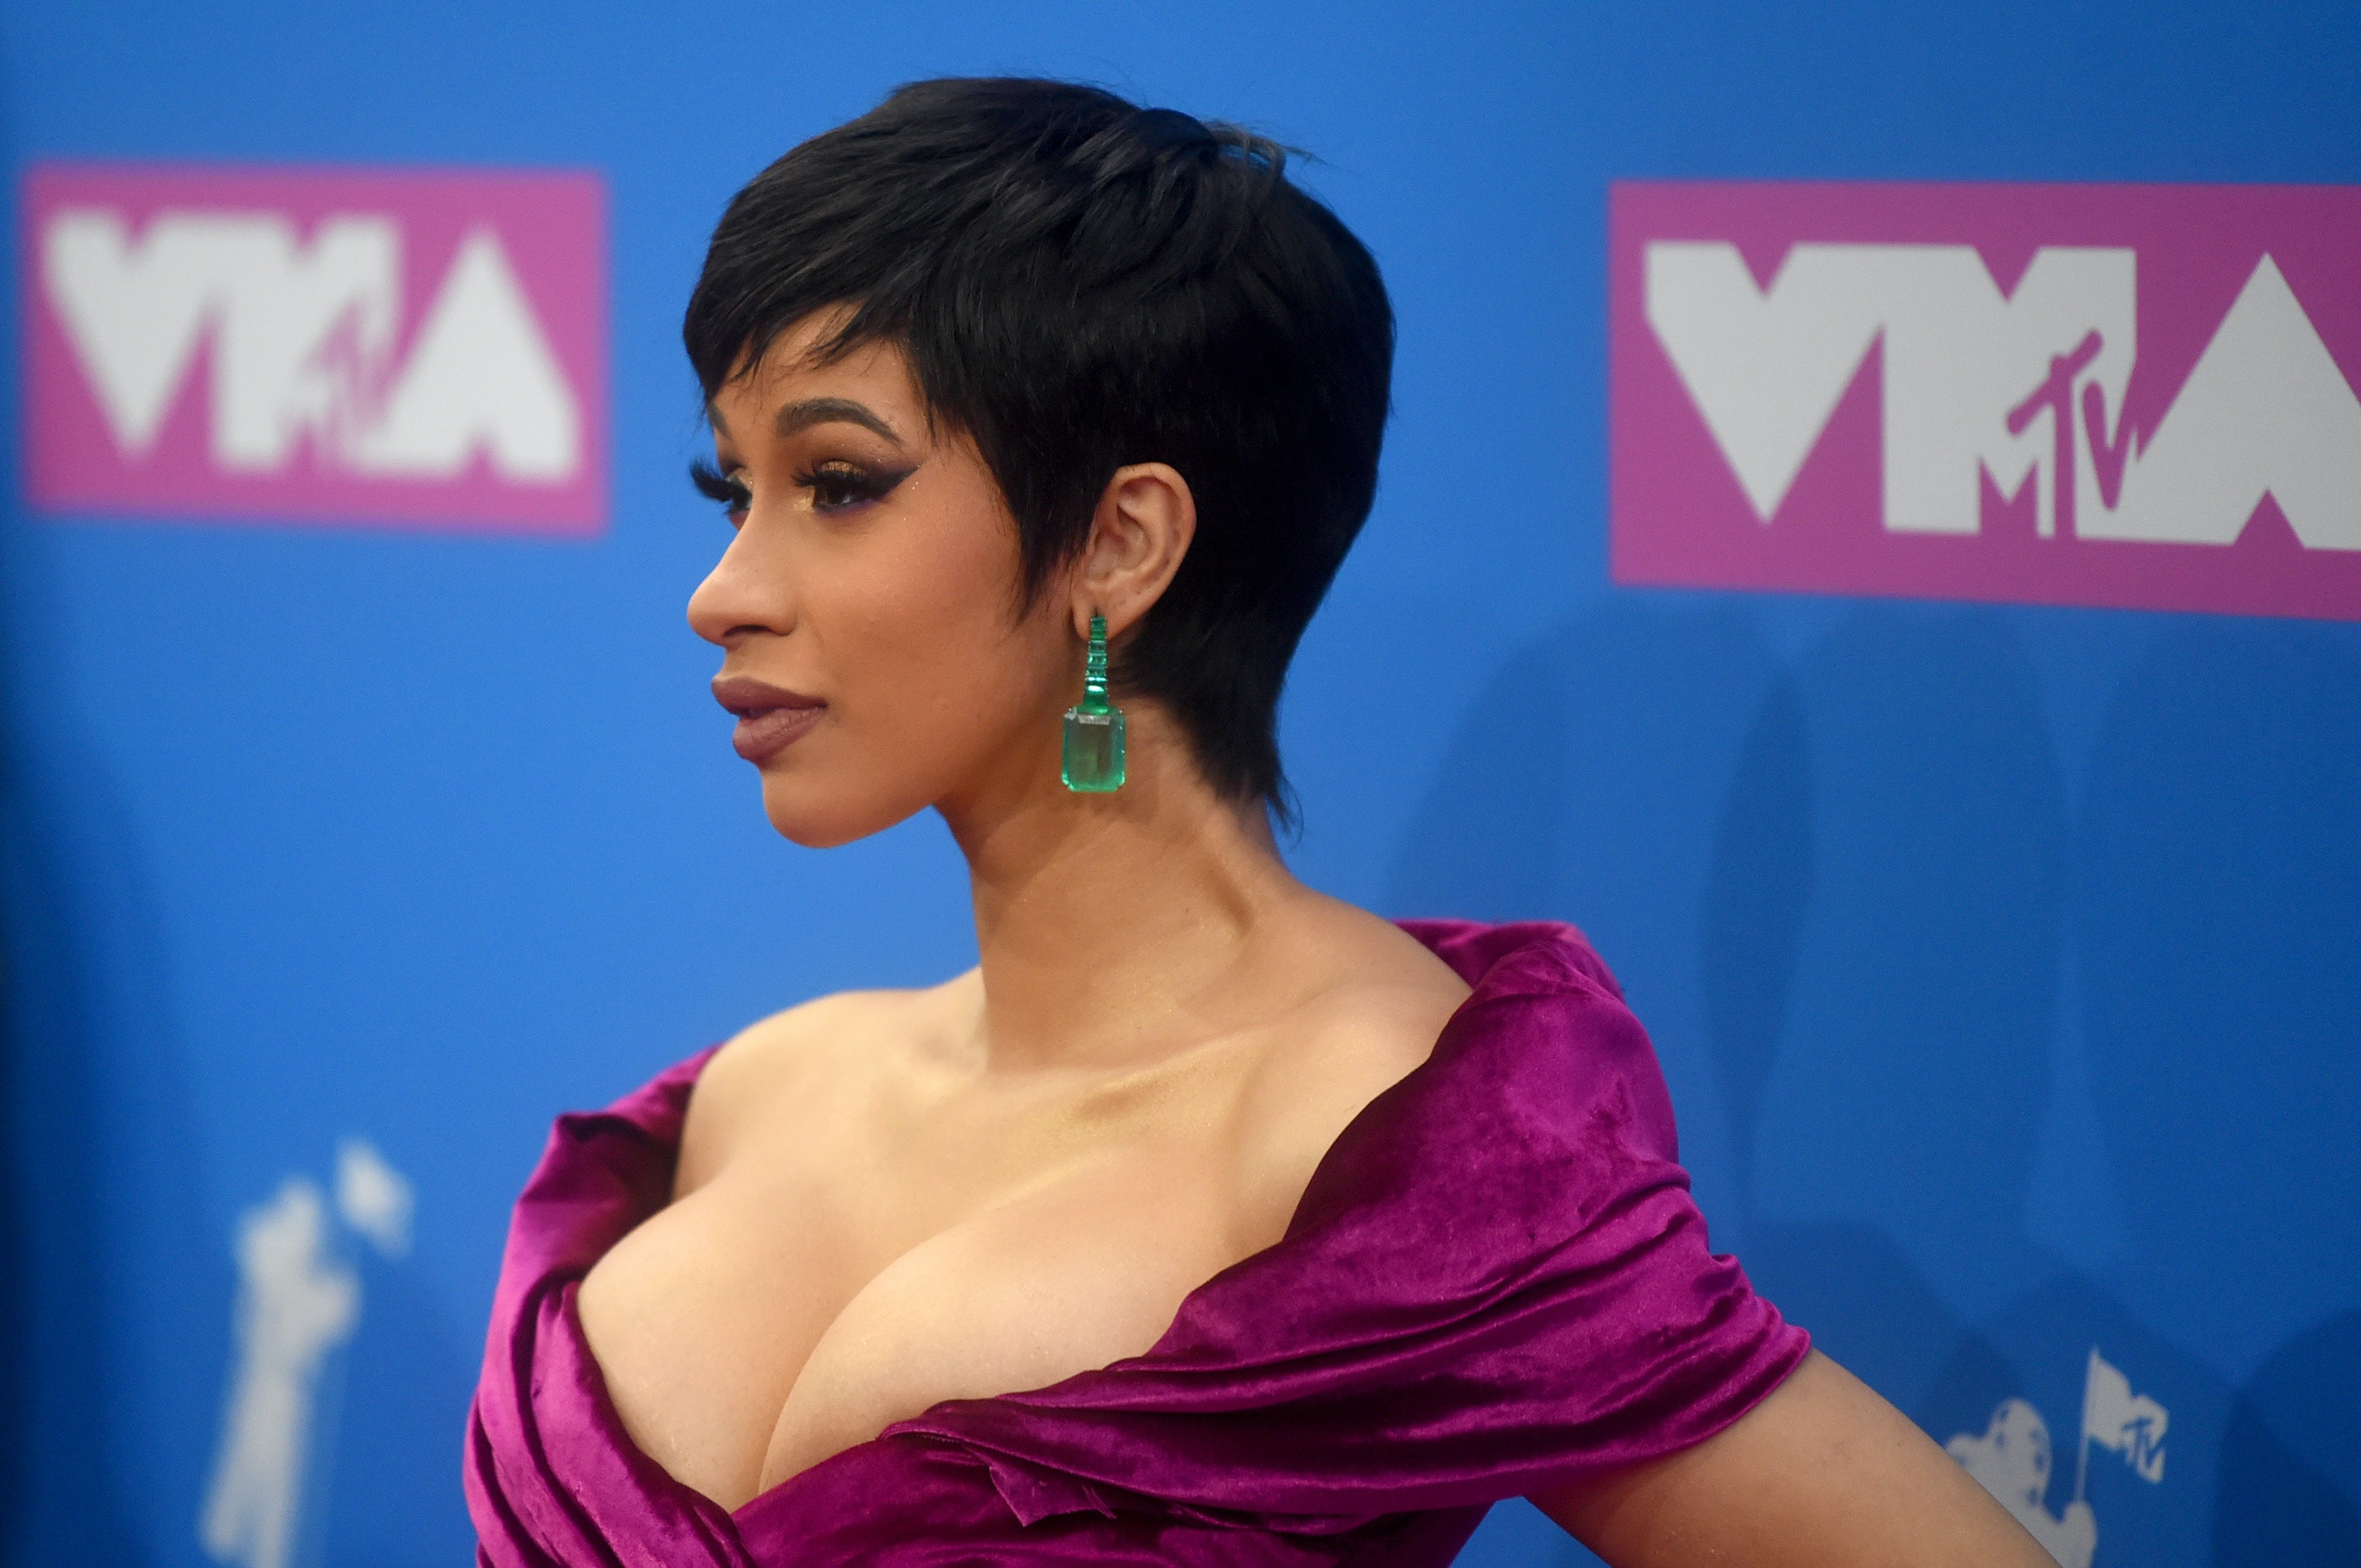 Cardi B S 2018 Vmas Dress Was So Glamorous But Her Hair Stole The Show